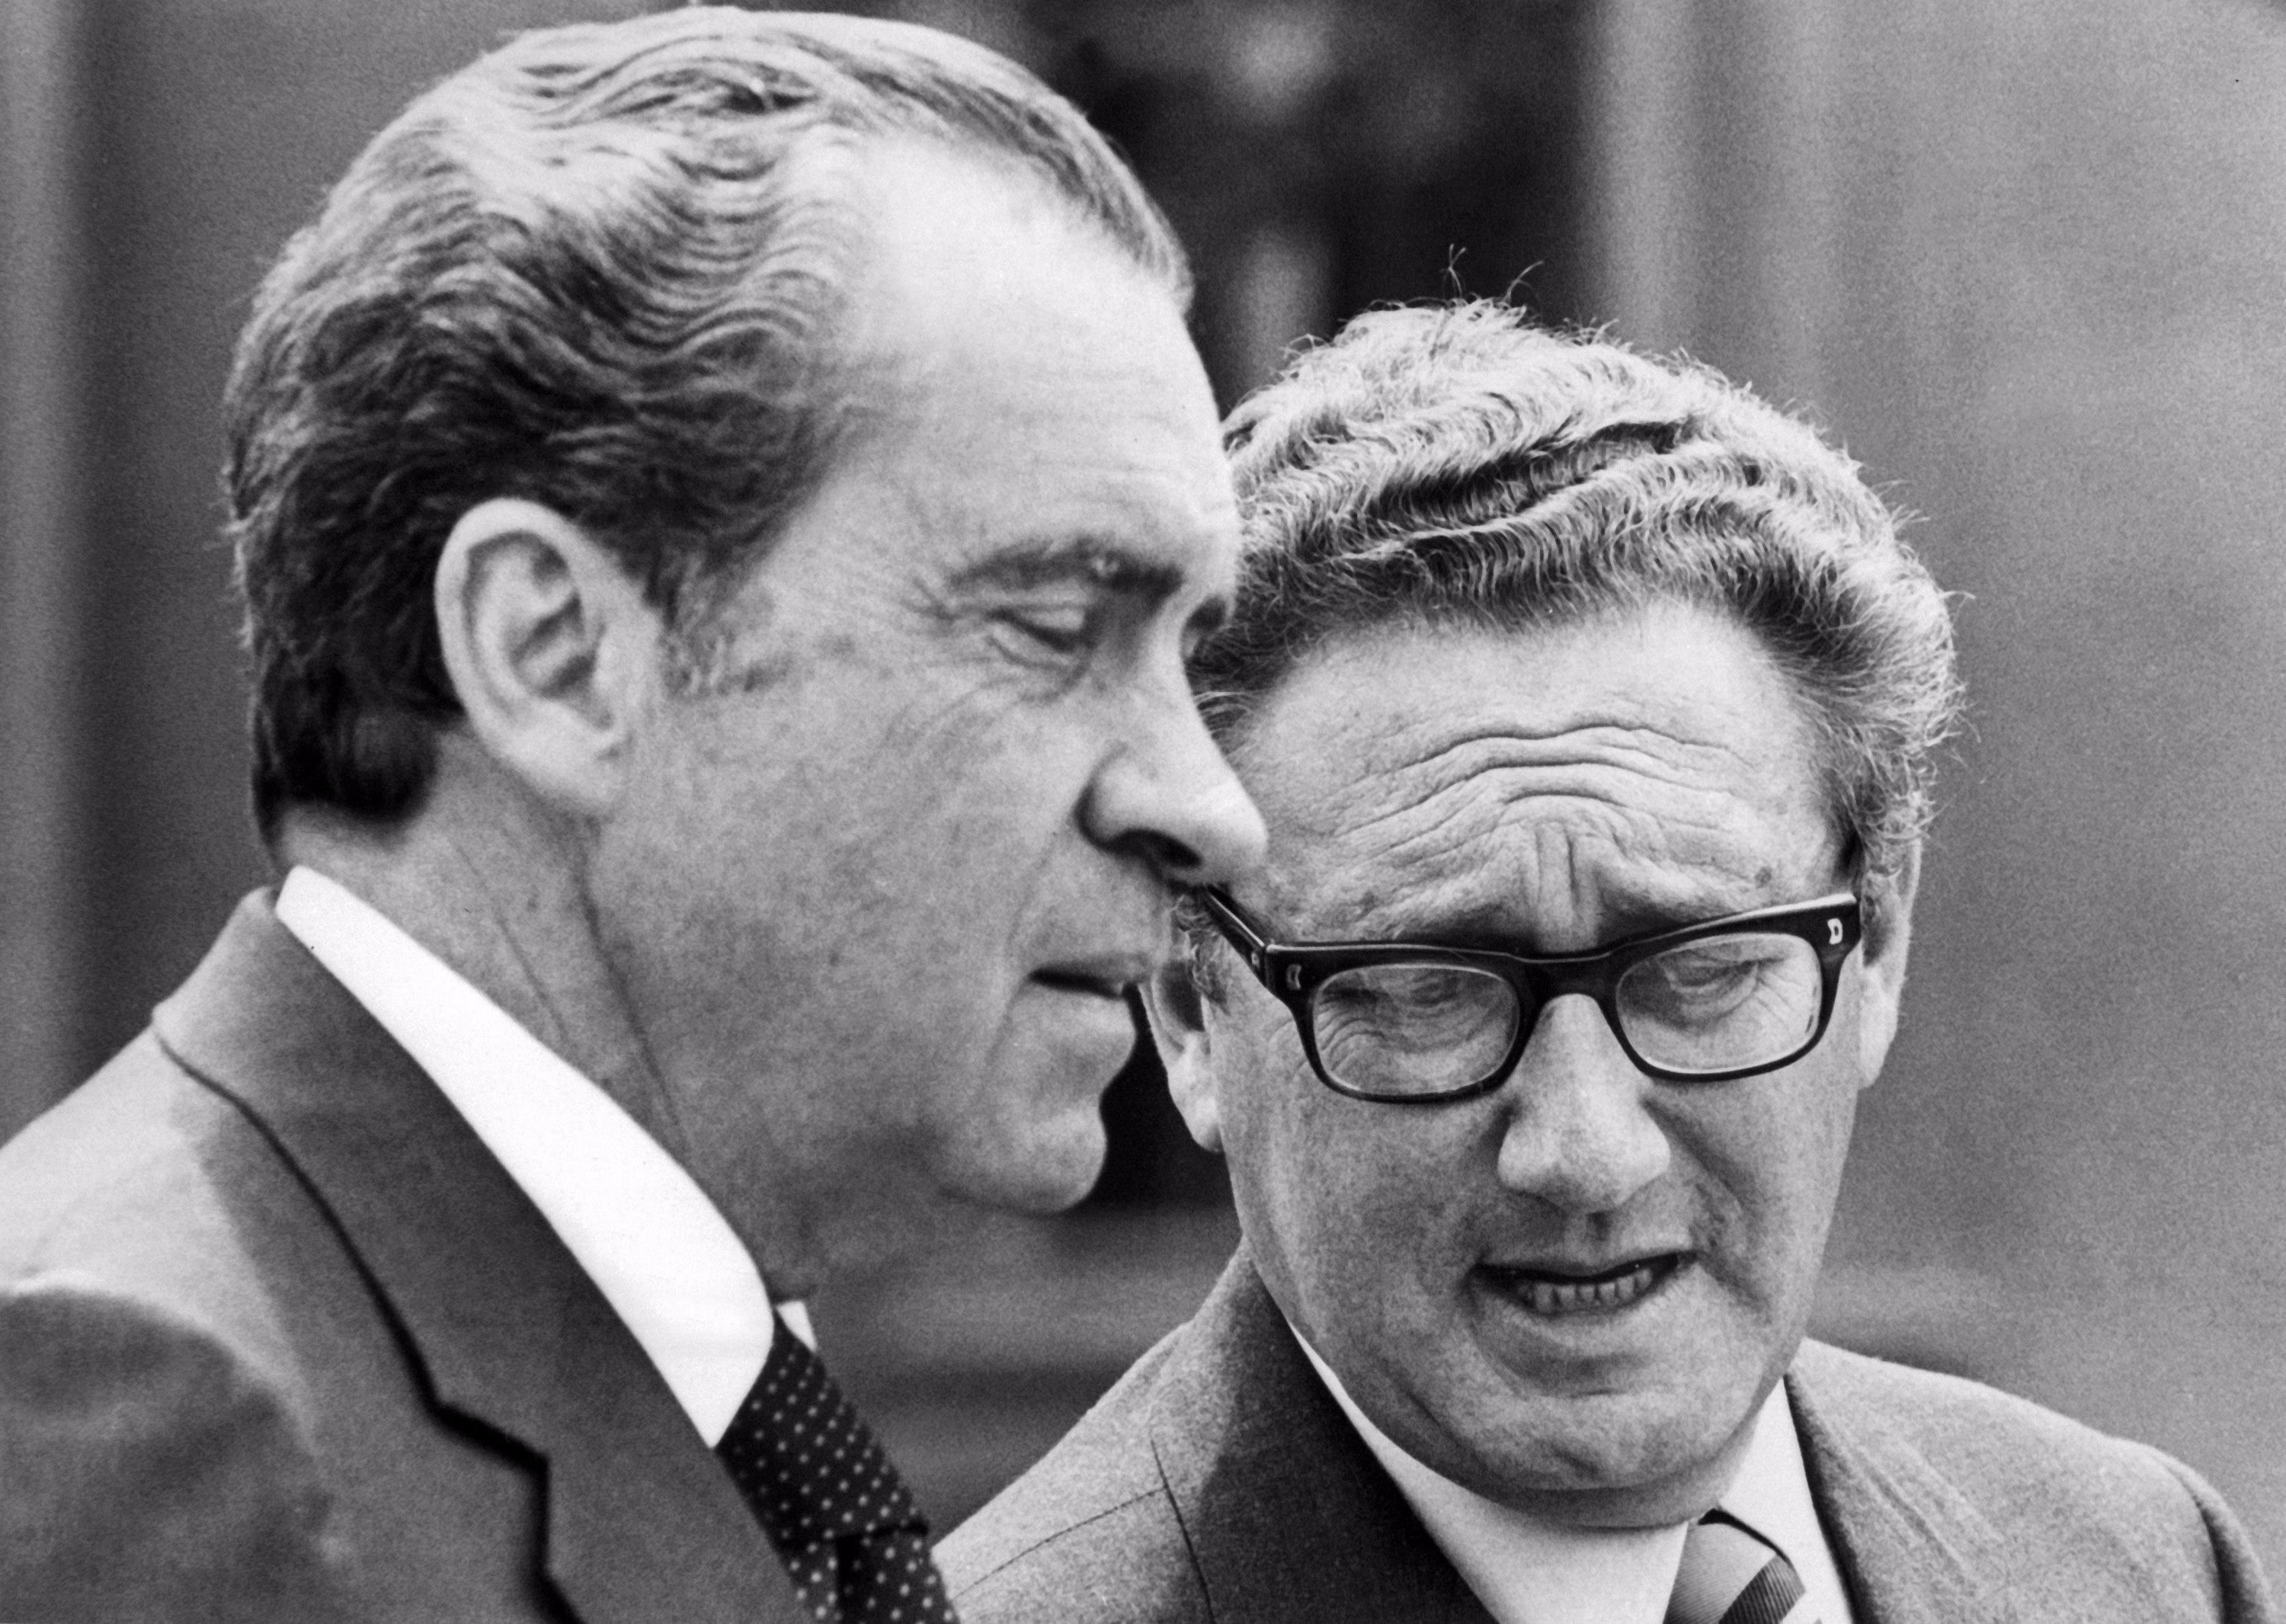 President Richard Nixon speaks with National Security Advisor Henry Kissinger during a trip to Salzburg, Austria in May 1972.